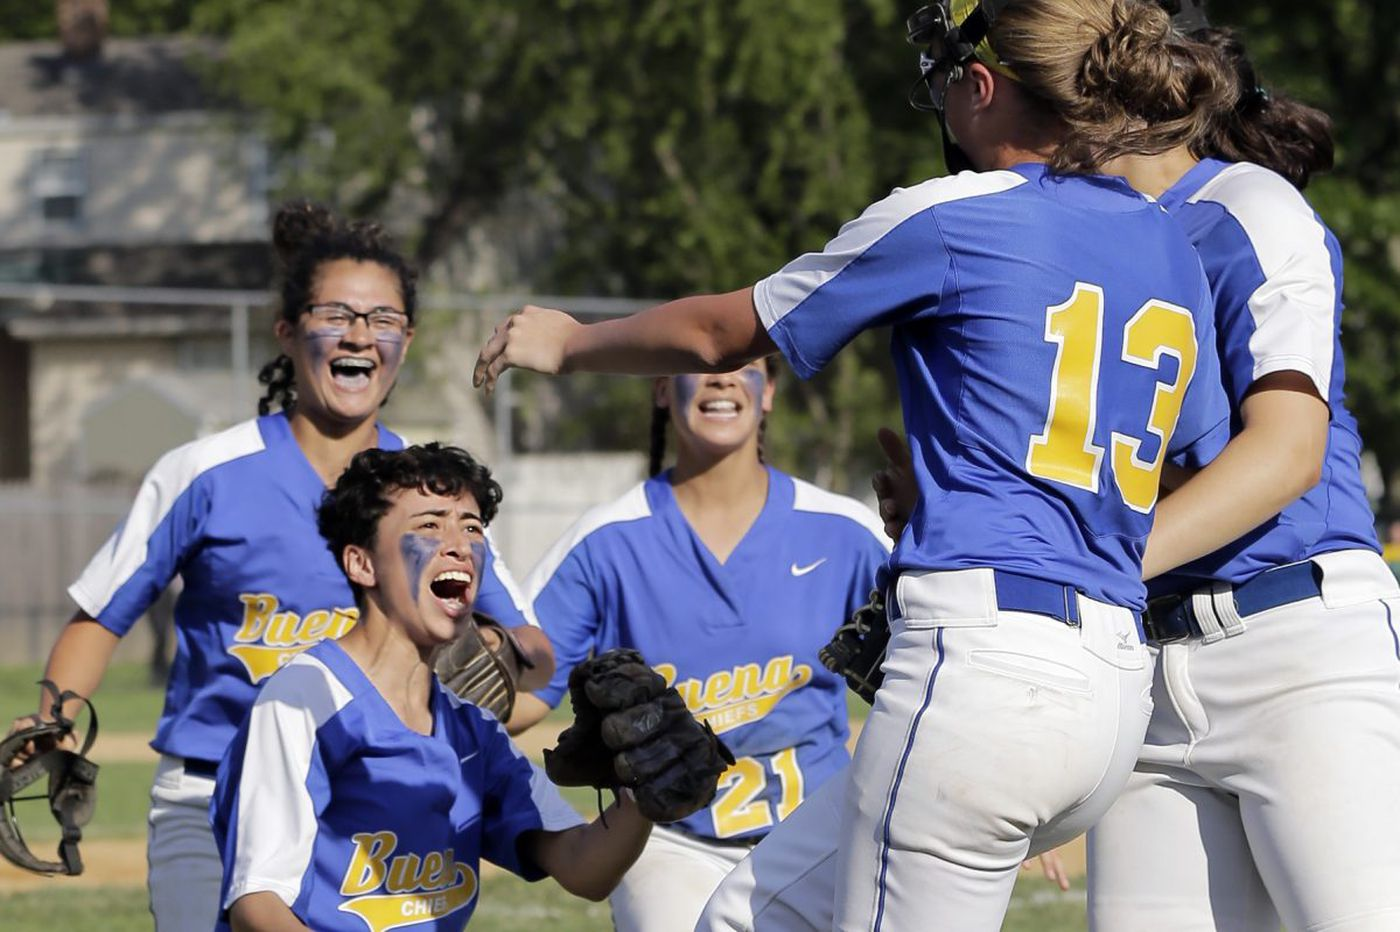 Wednesday's South Jersey roundup: Cedar Creek's Brianna Young hits walk-off grand slam in sectional quarterfinals